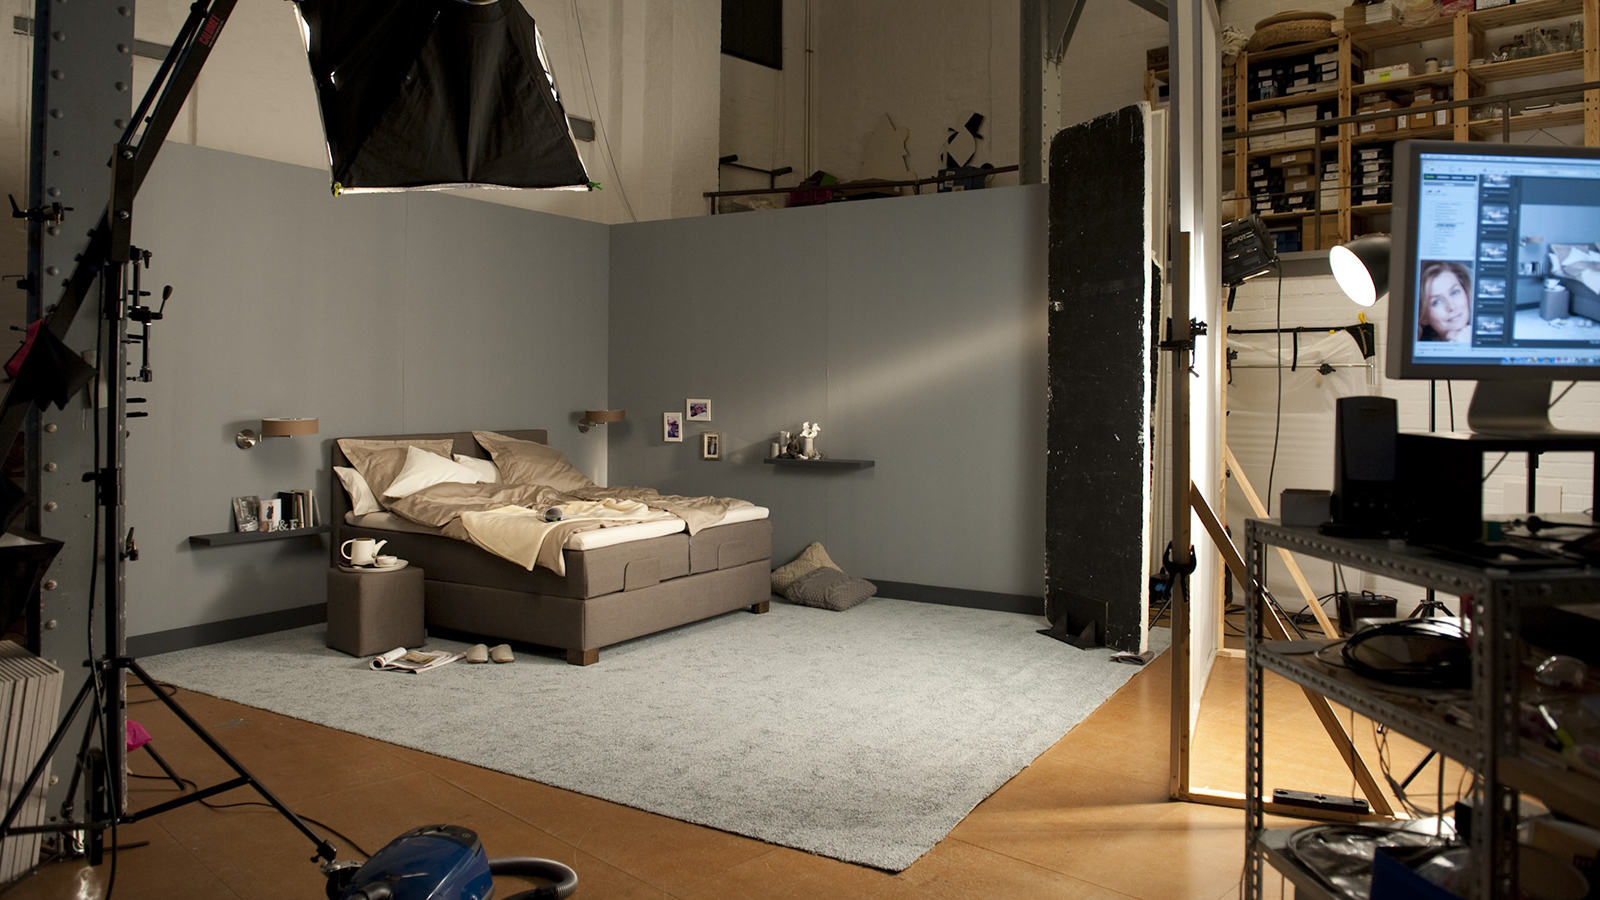 studio siebert julius siebert fotografie. Black Bedroom Furniture Sets. Home Design Ideas